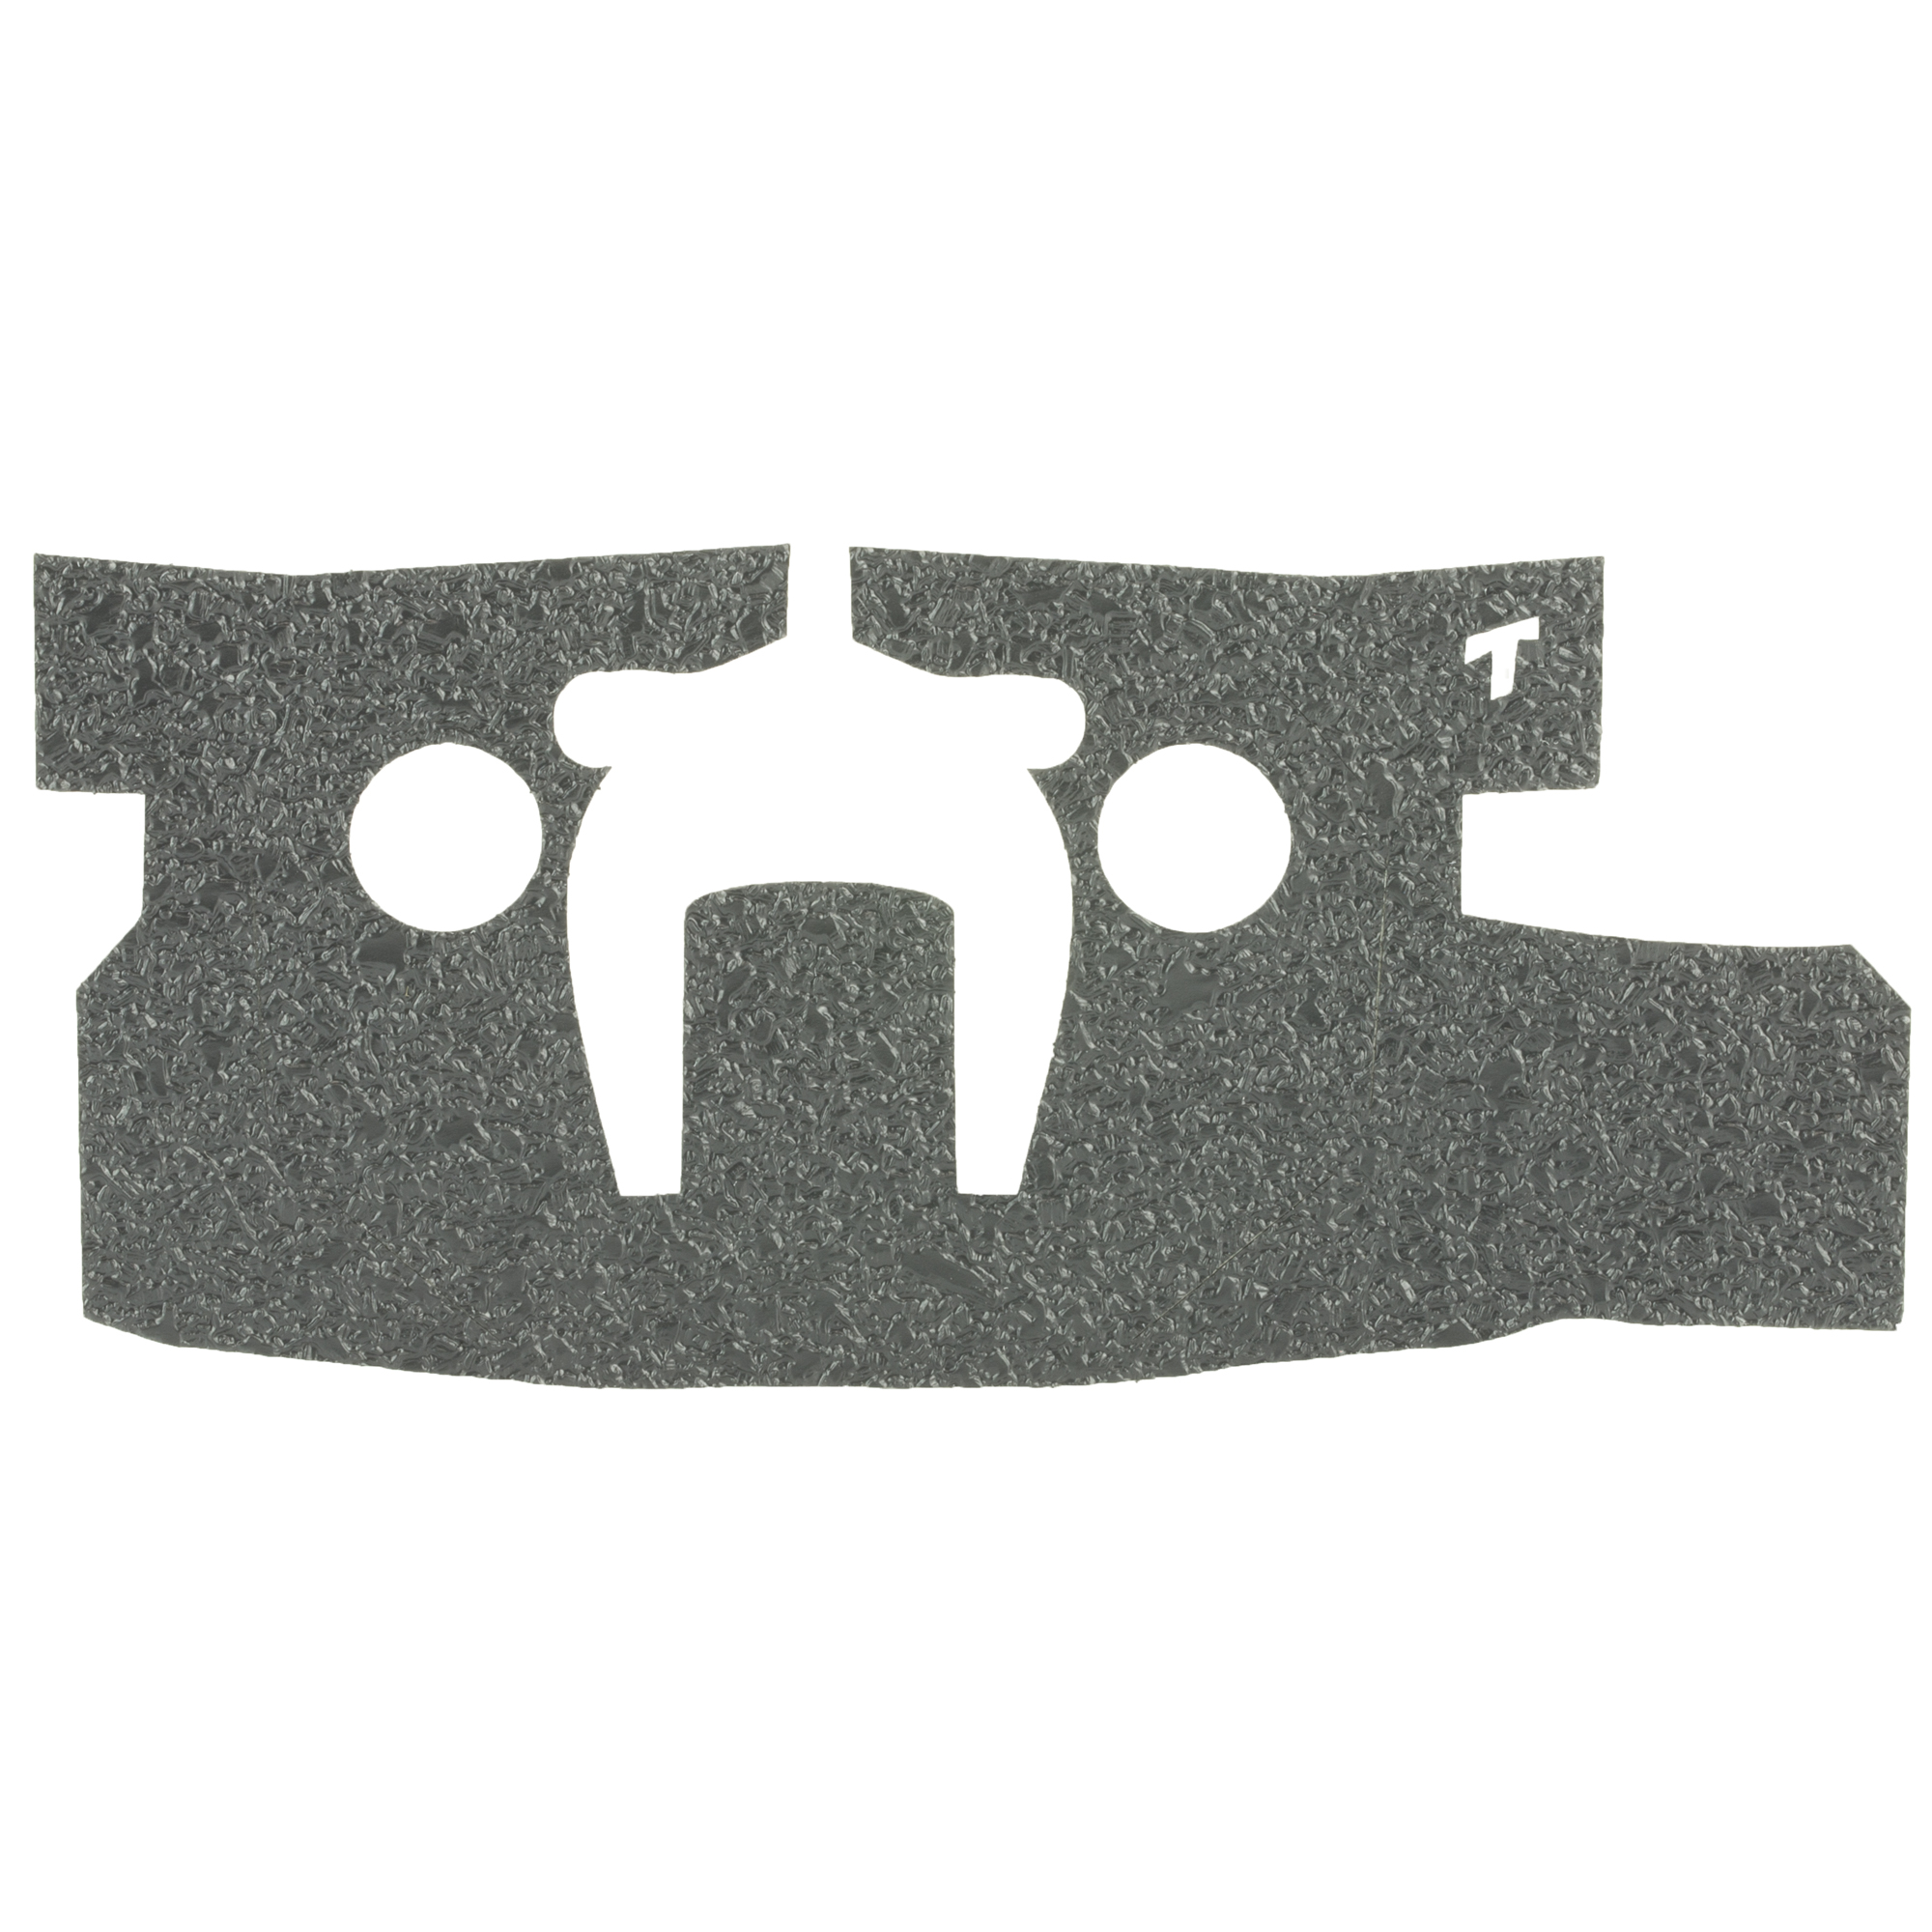 """TALON Grips for Ruger LCP II model. This rear wrap grip is available in the rubber texture and offers full side panel coverage including the thumb rest area"""" full coverage under the trigger guard"""" and high coverage on the backstrap. This grip has graphic cutouts for the Ruger emblem on each side of the firearm."""